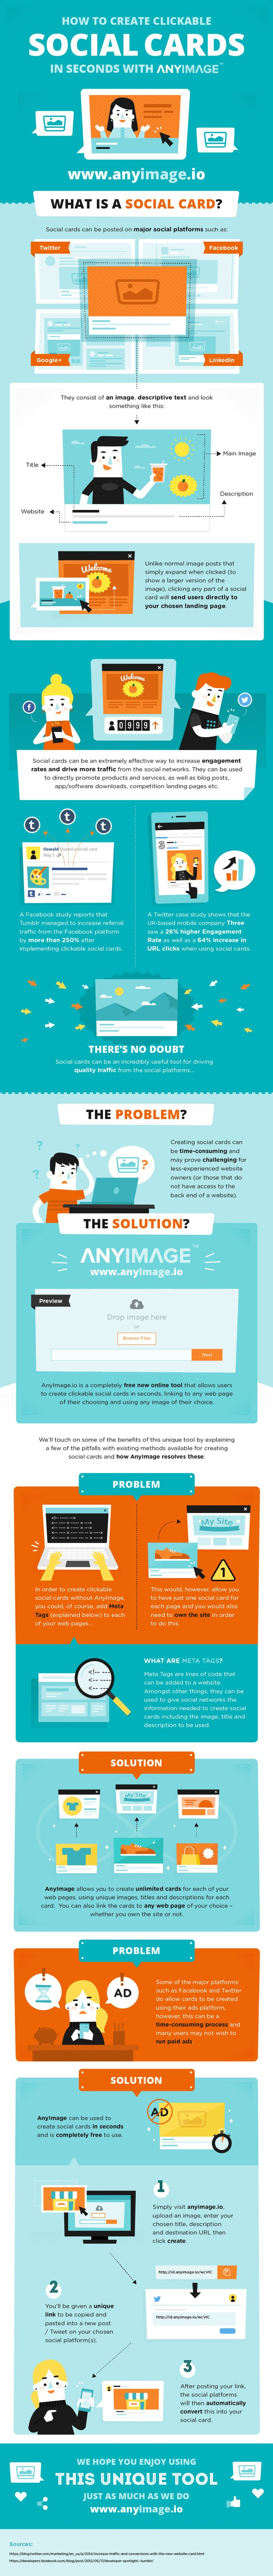 Create Clickable Social / Summary Cards in Seconds with AnyImage #Infographic #HowTo #SocialMedia